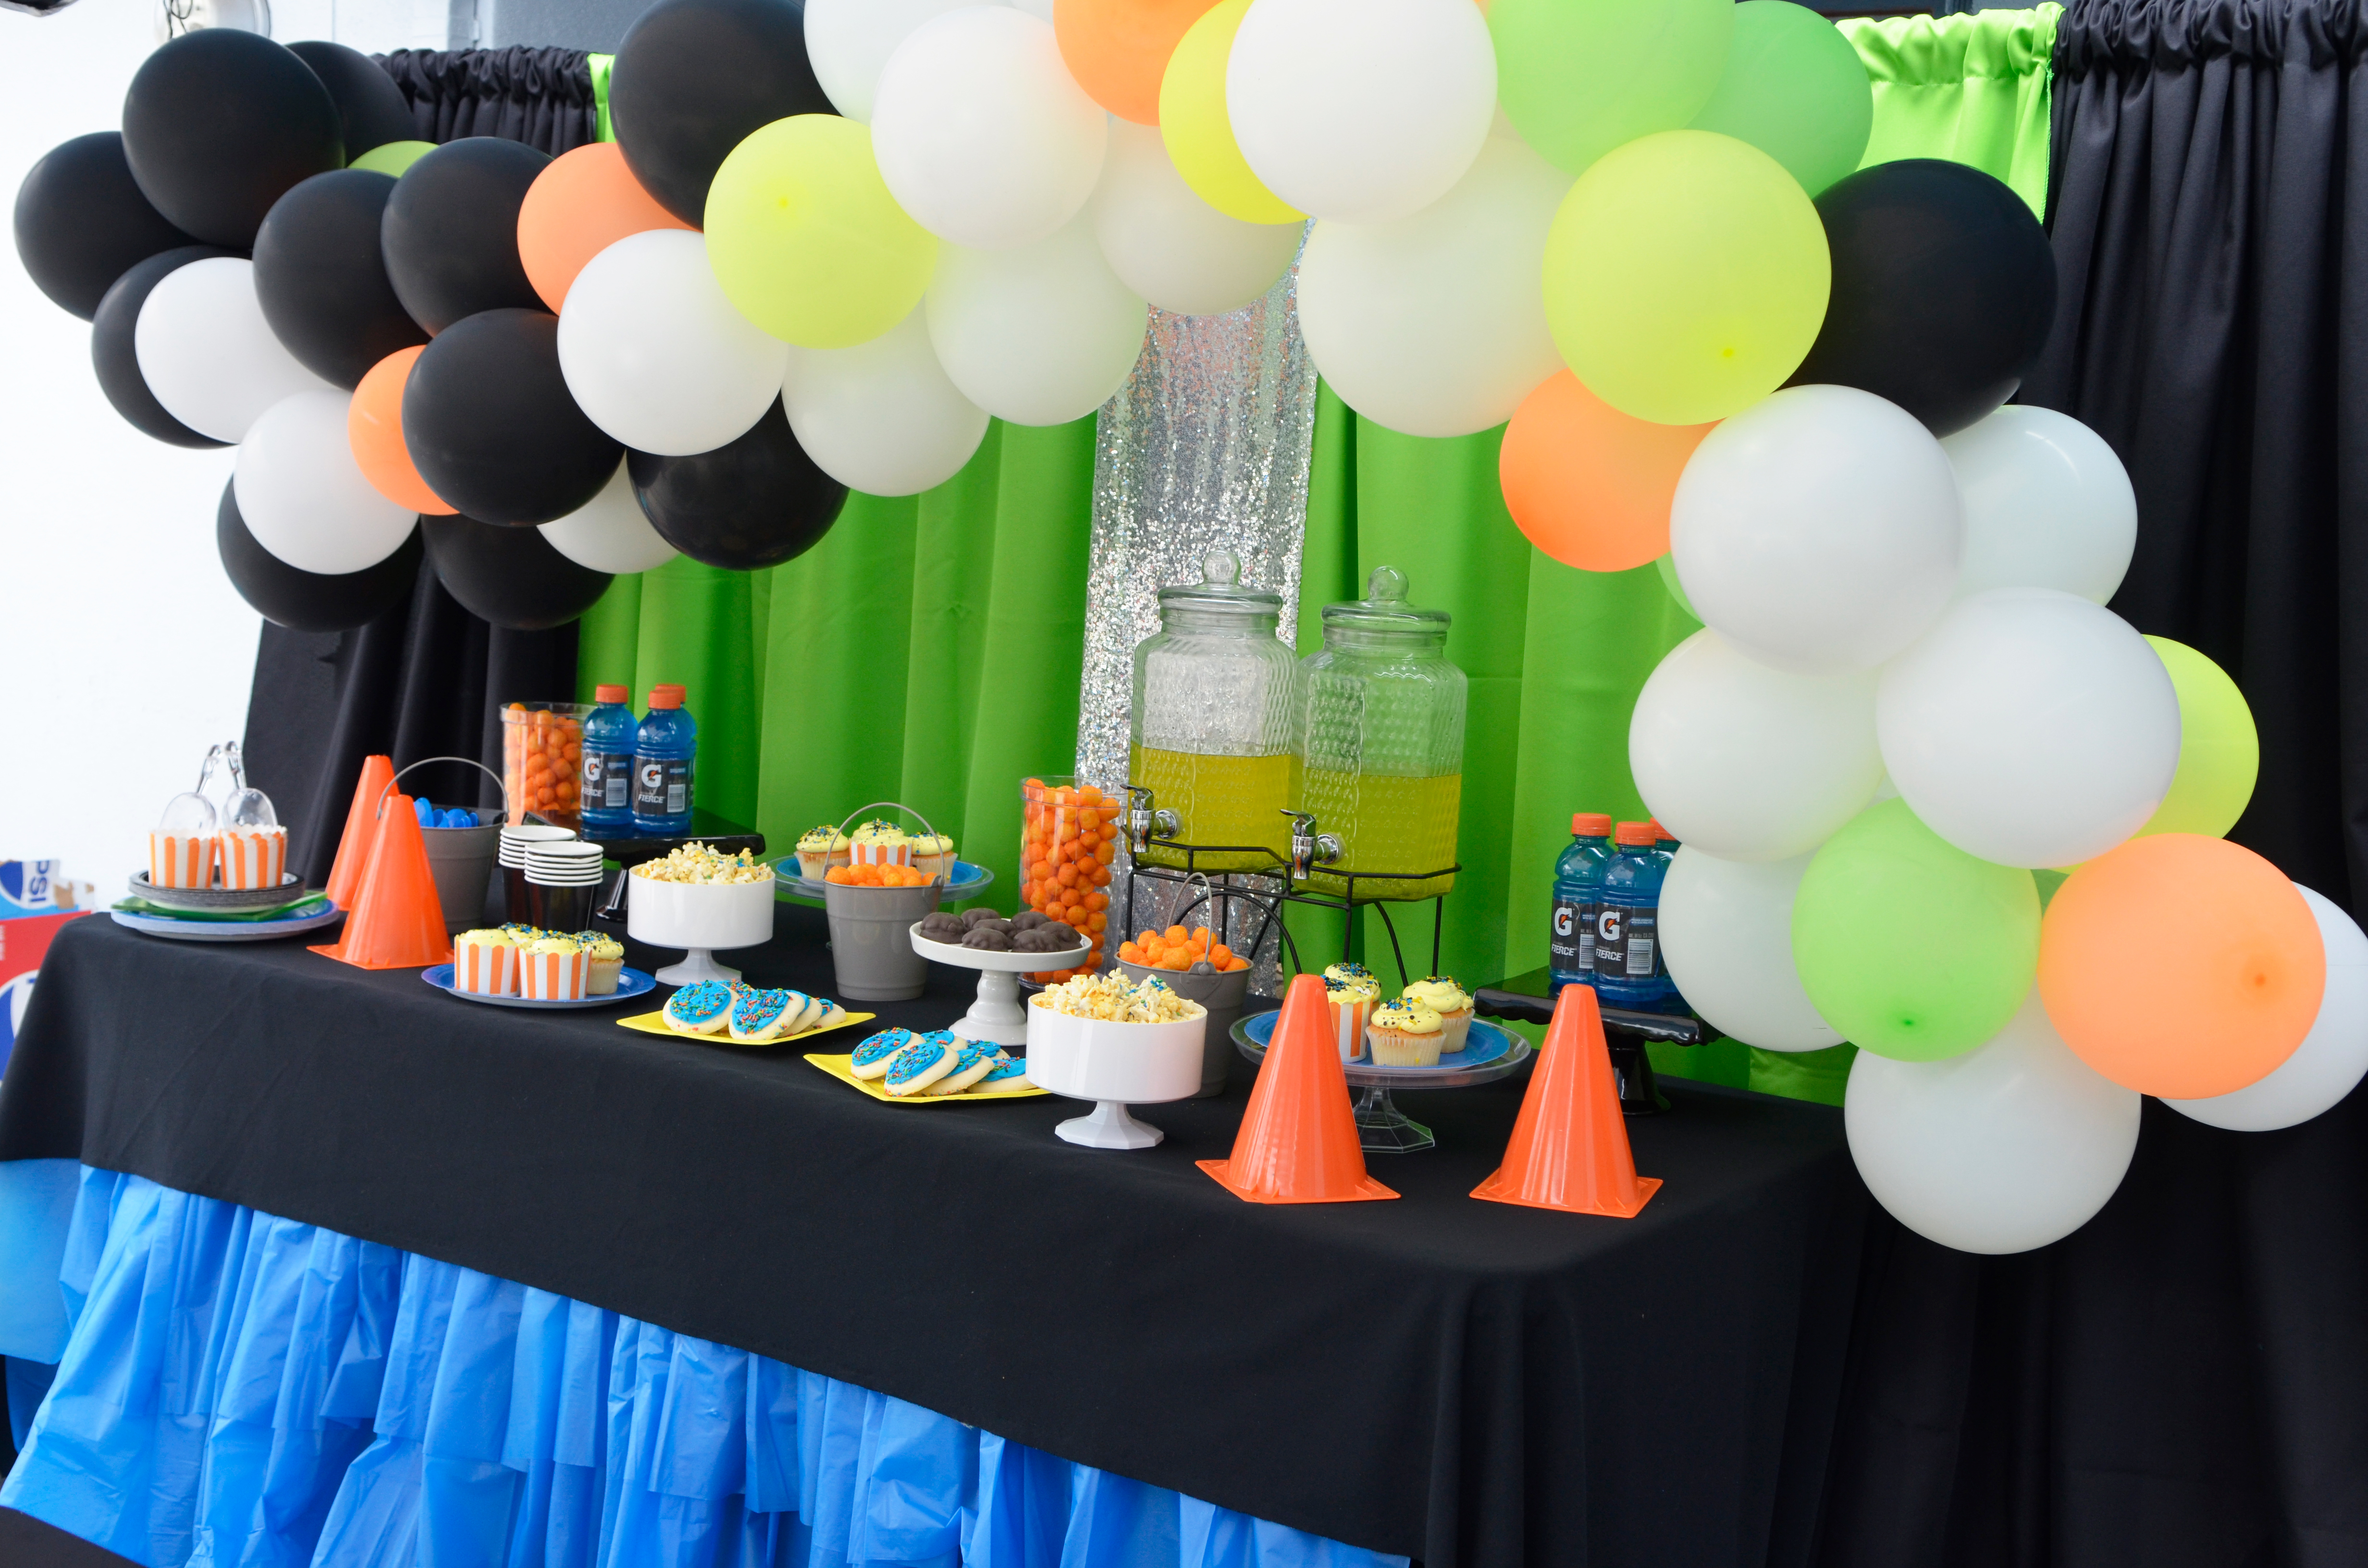 2 Hours & $20 to plan a party, Game On! (Boy\'s Game Truck Theme)